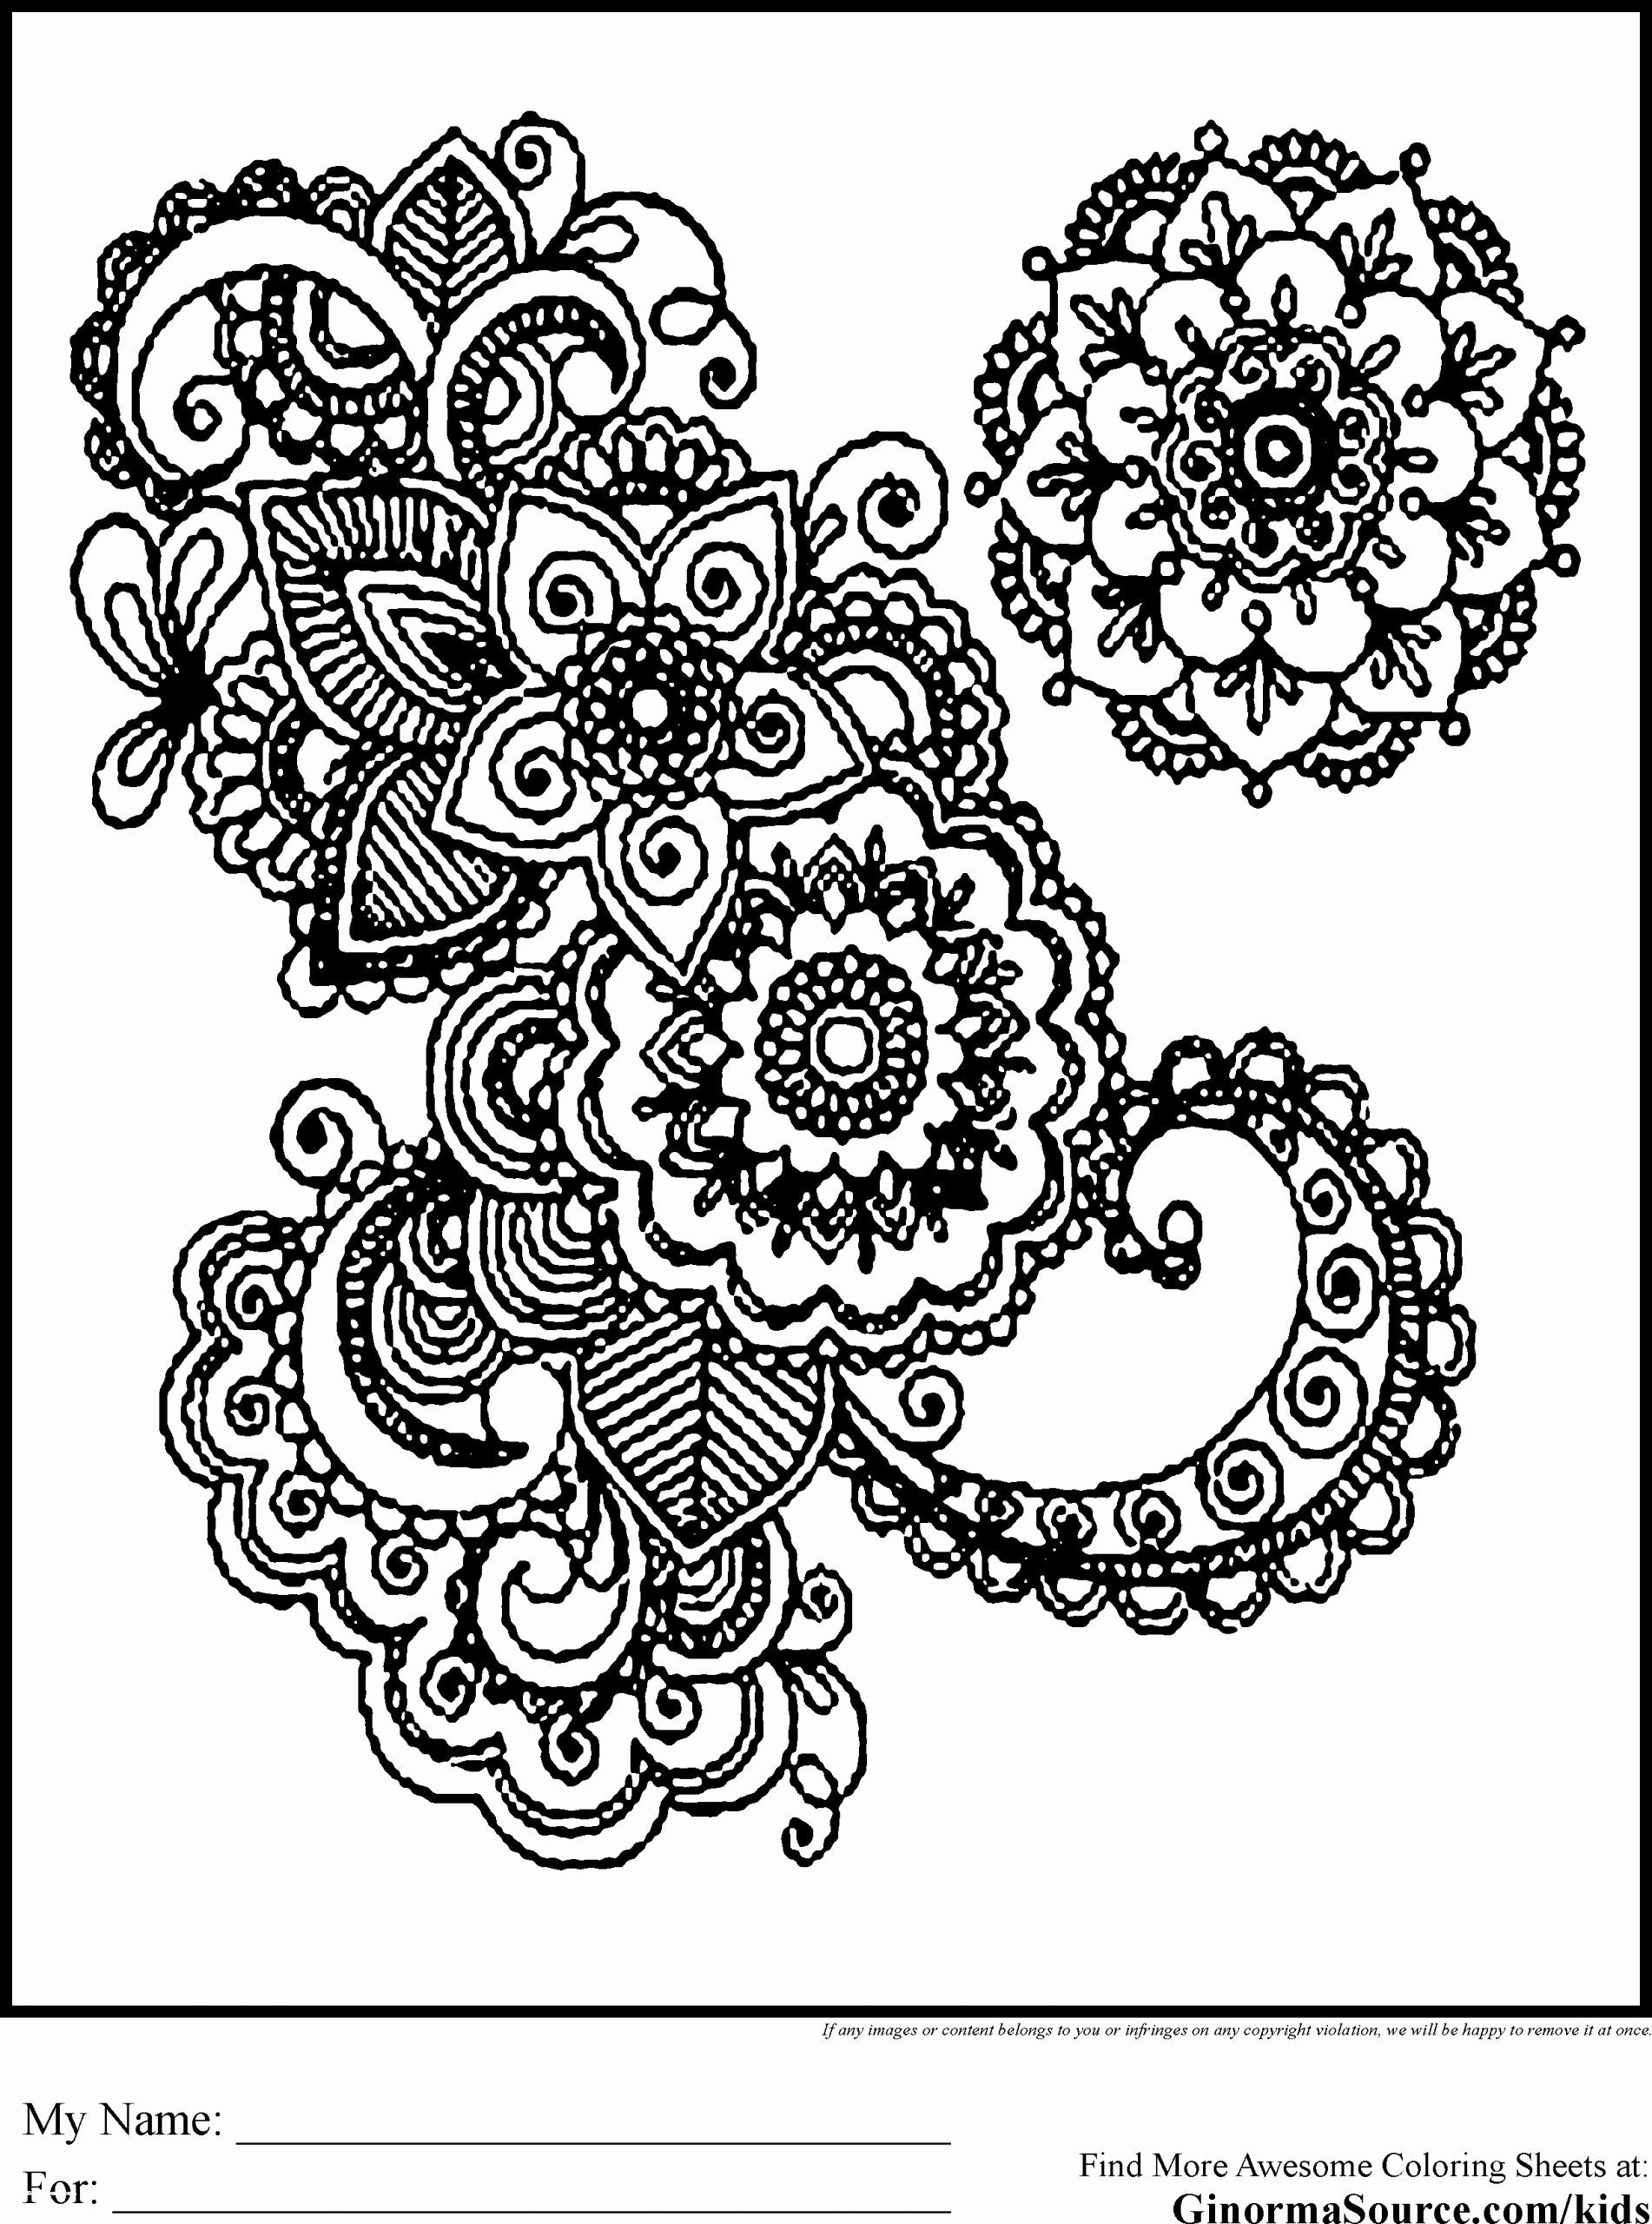 Abstract Art Coloring Pages Awesome Coloring Pages Printable Drawings For Adults Luxury Cool In 2020 Abstract Coloring Pages Detailed Coloring Pages Coloring Pages